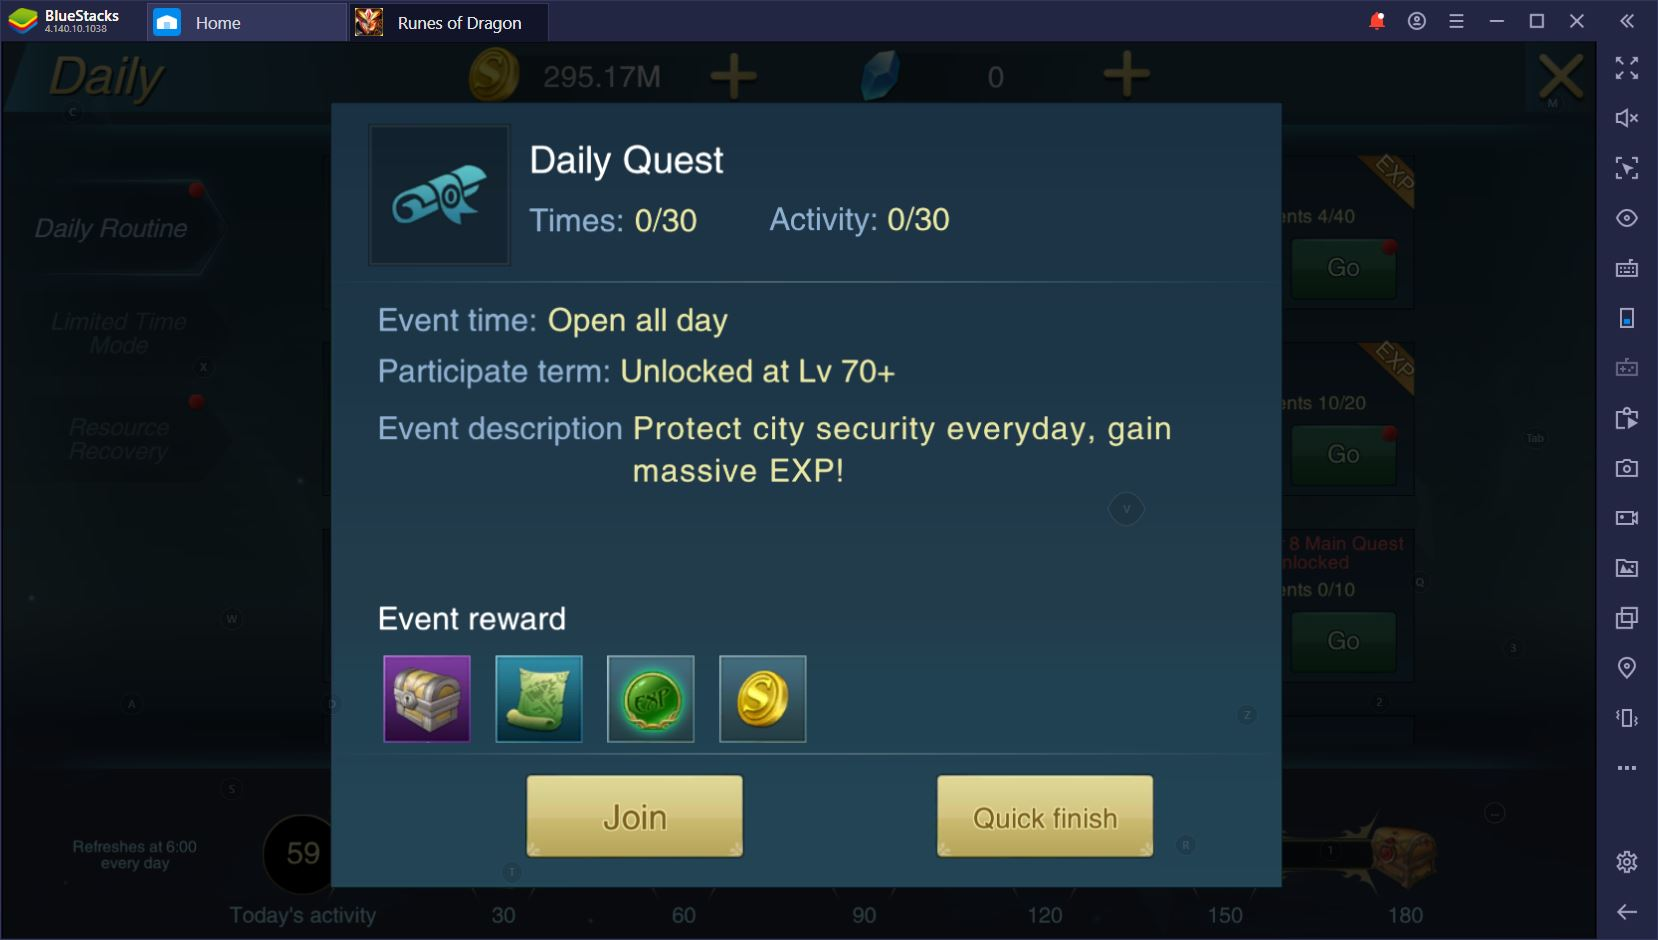 Runes of Dragon on PC: Daily To-Do List for Active Players